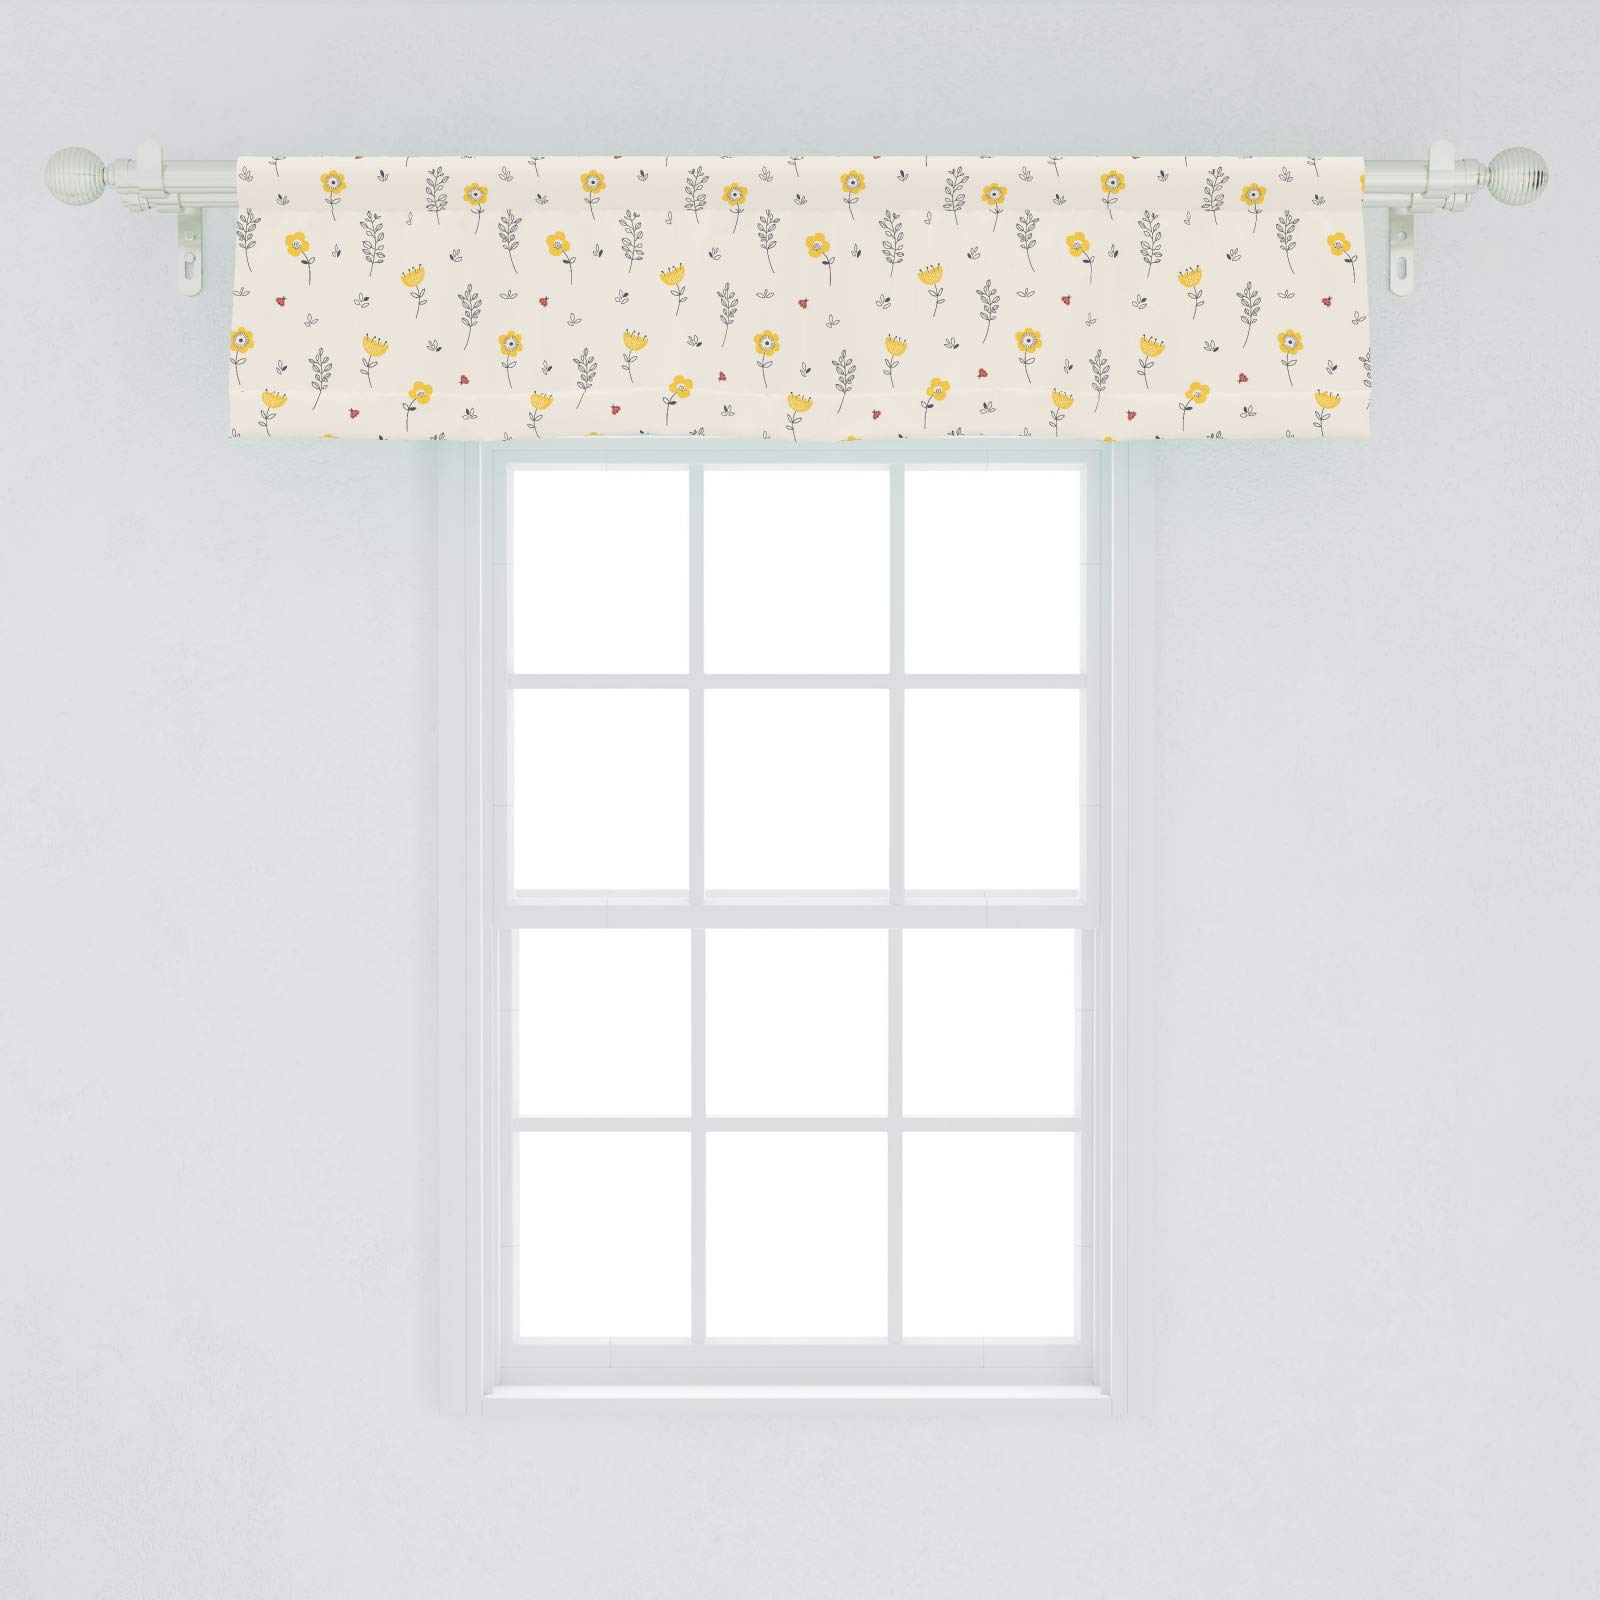 Lunarable Floral Window Valance Contour Flowers Leaves And Tiny Ladybugs Pattern Spring Flora Theme Curtain Valance For Kitchen Bedroom Decor With Rod Pocket 54 X 12 Champagne Yellow Home Kitchen